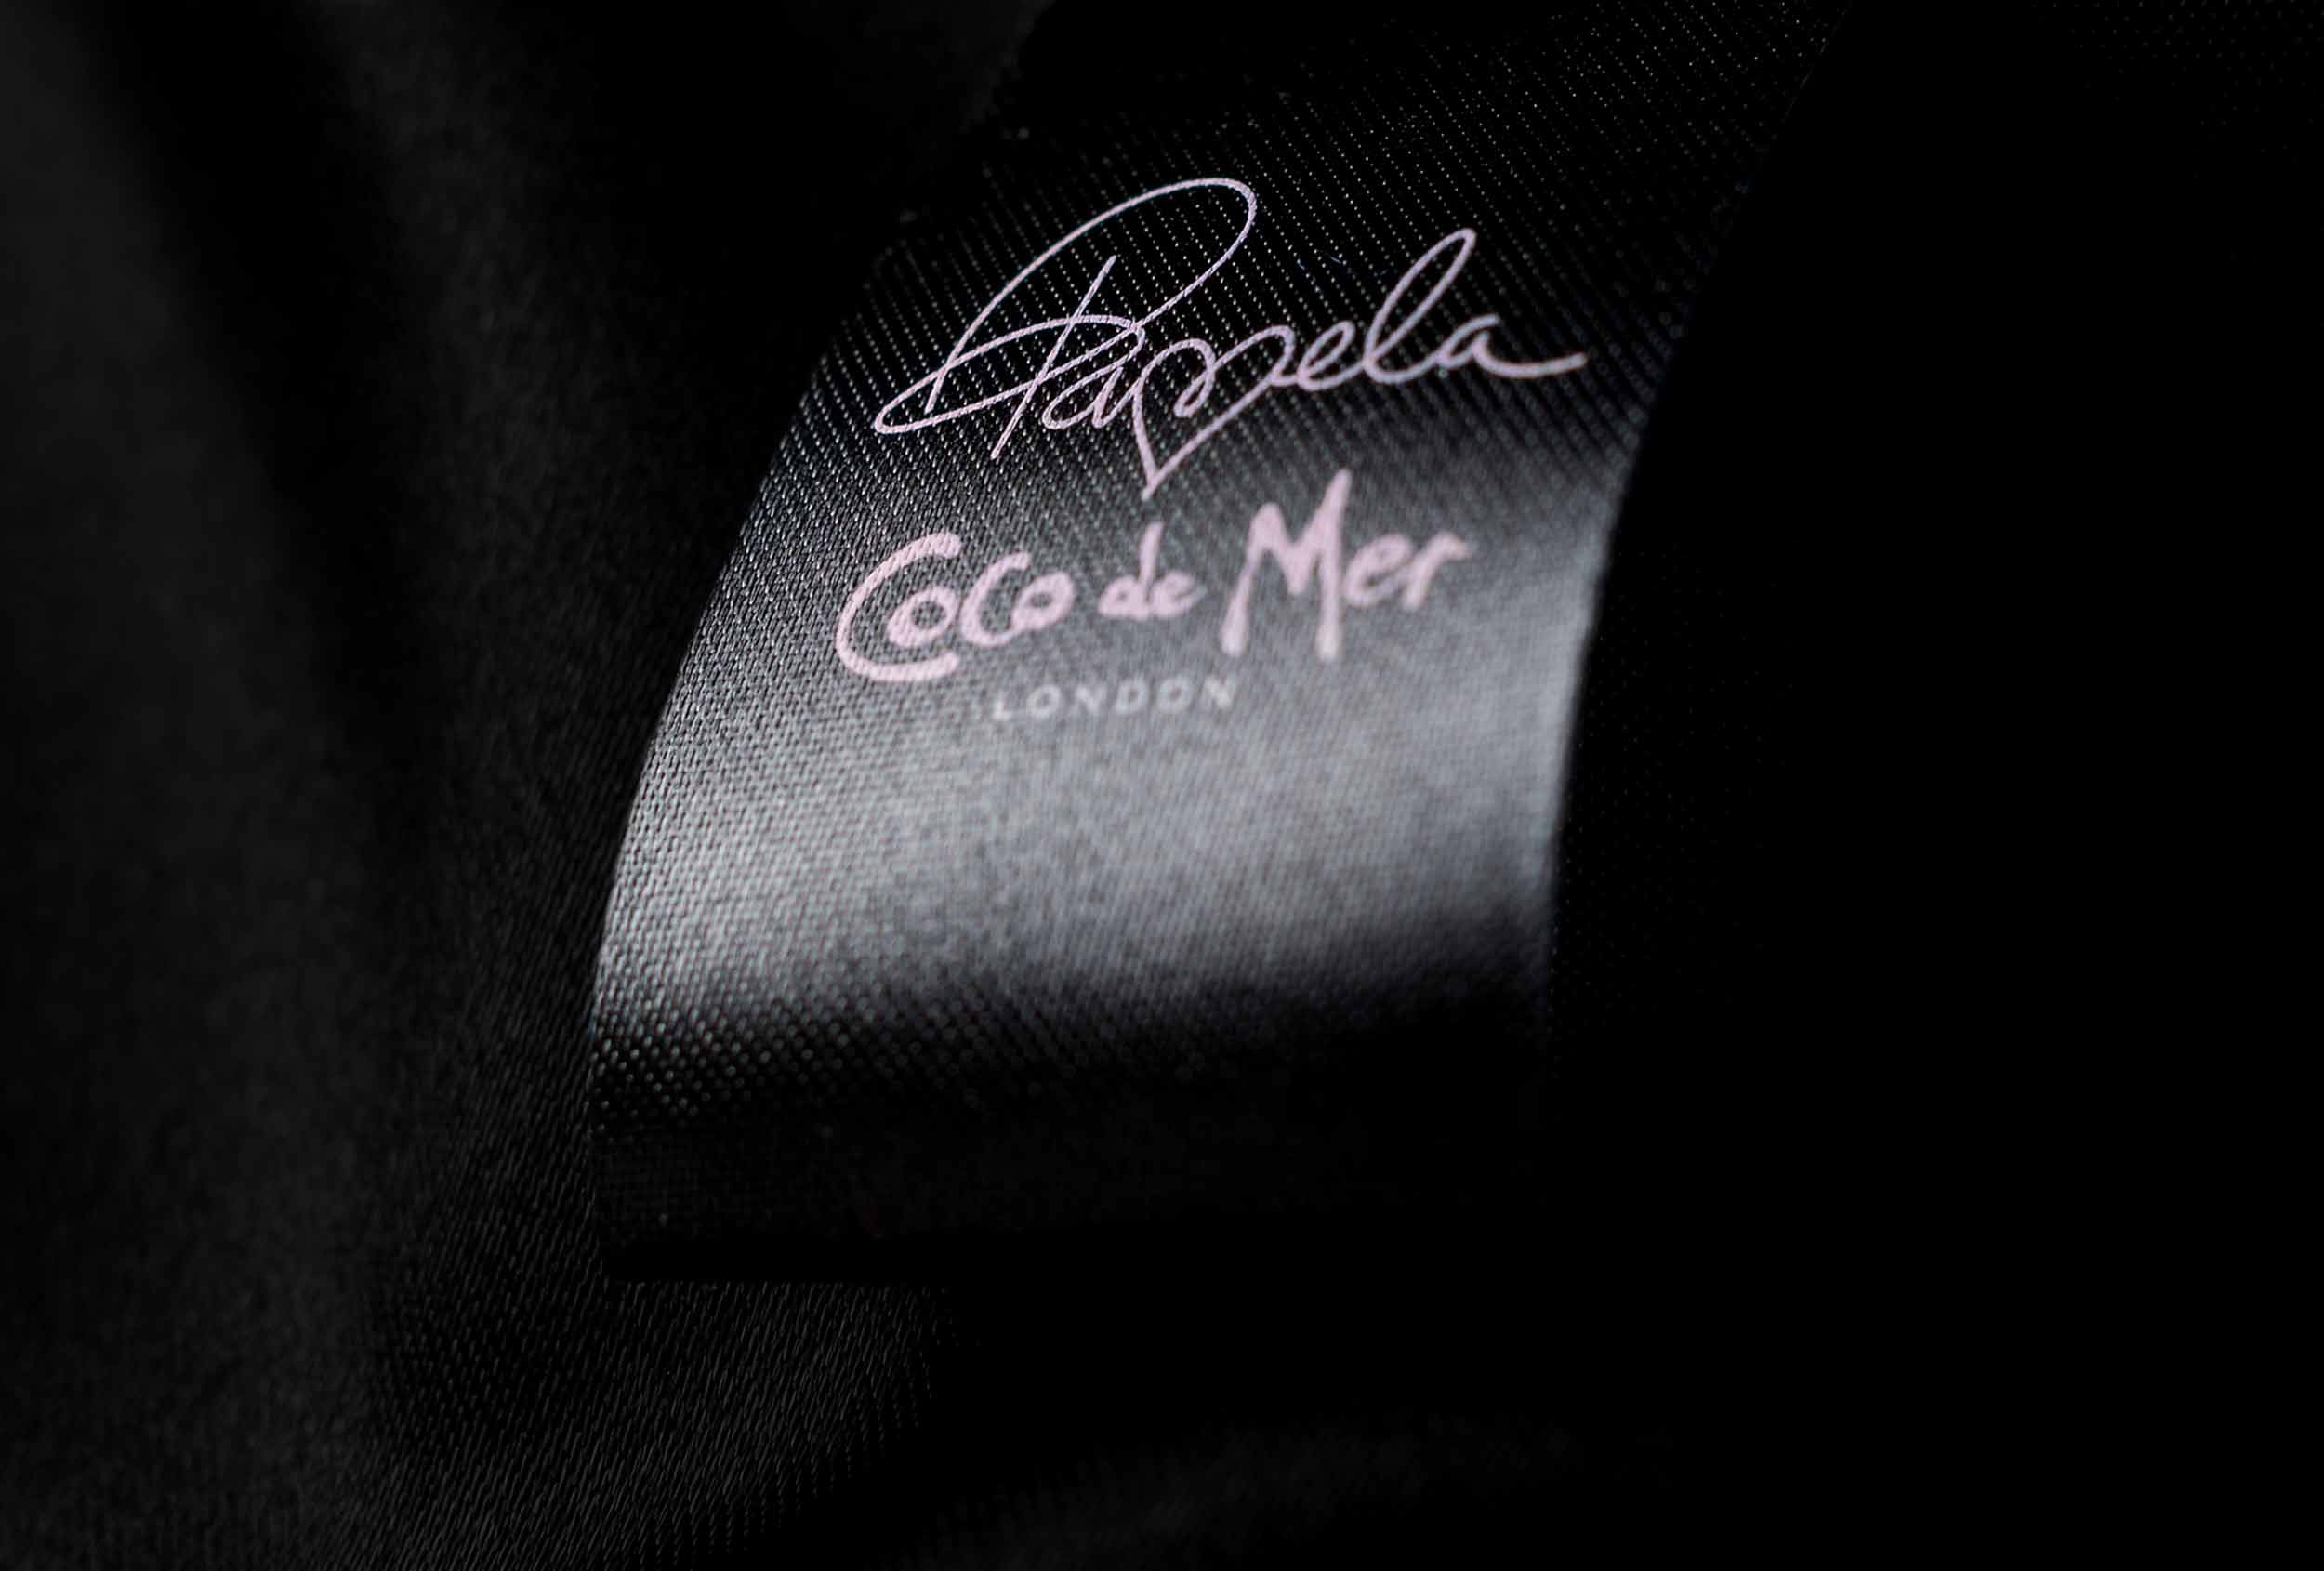 Design detail of Pamela Loves Coco de Mer collection.